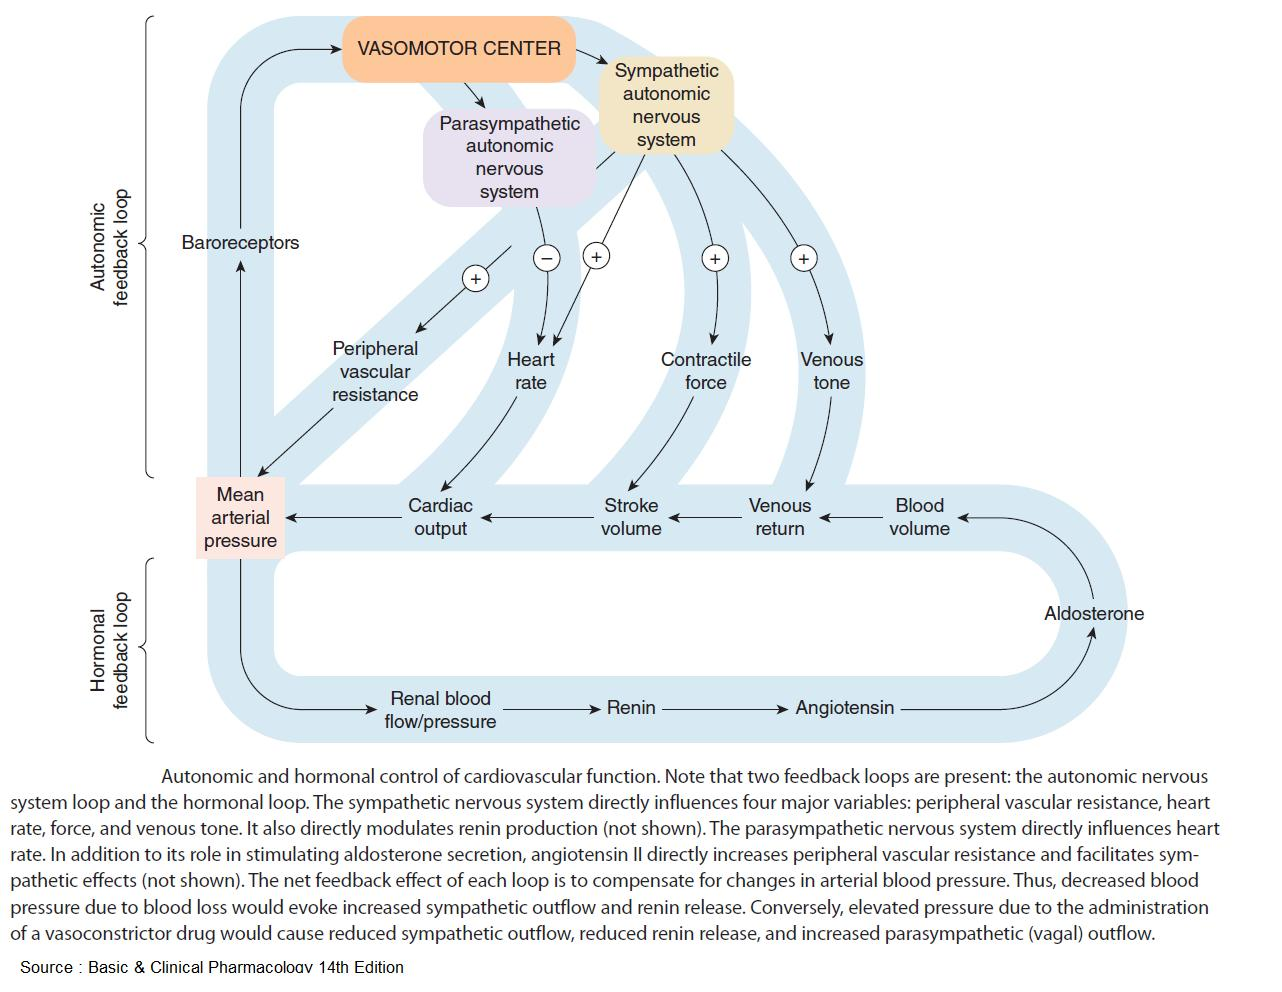 Autonomic and Hormonal Control of Cardiovascular Function . #meded #foamed #usmle #medicine https://t.co/yCseVEEQjS